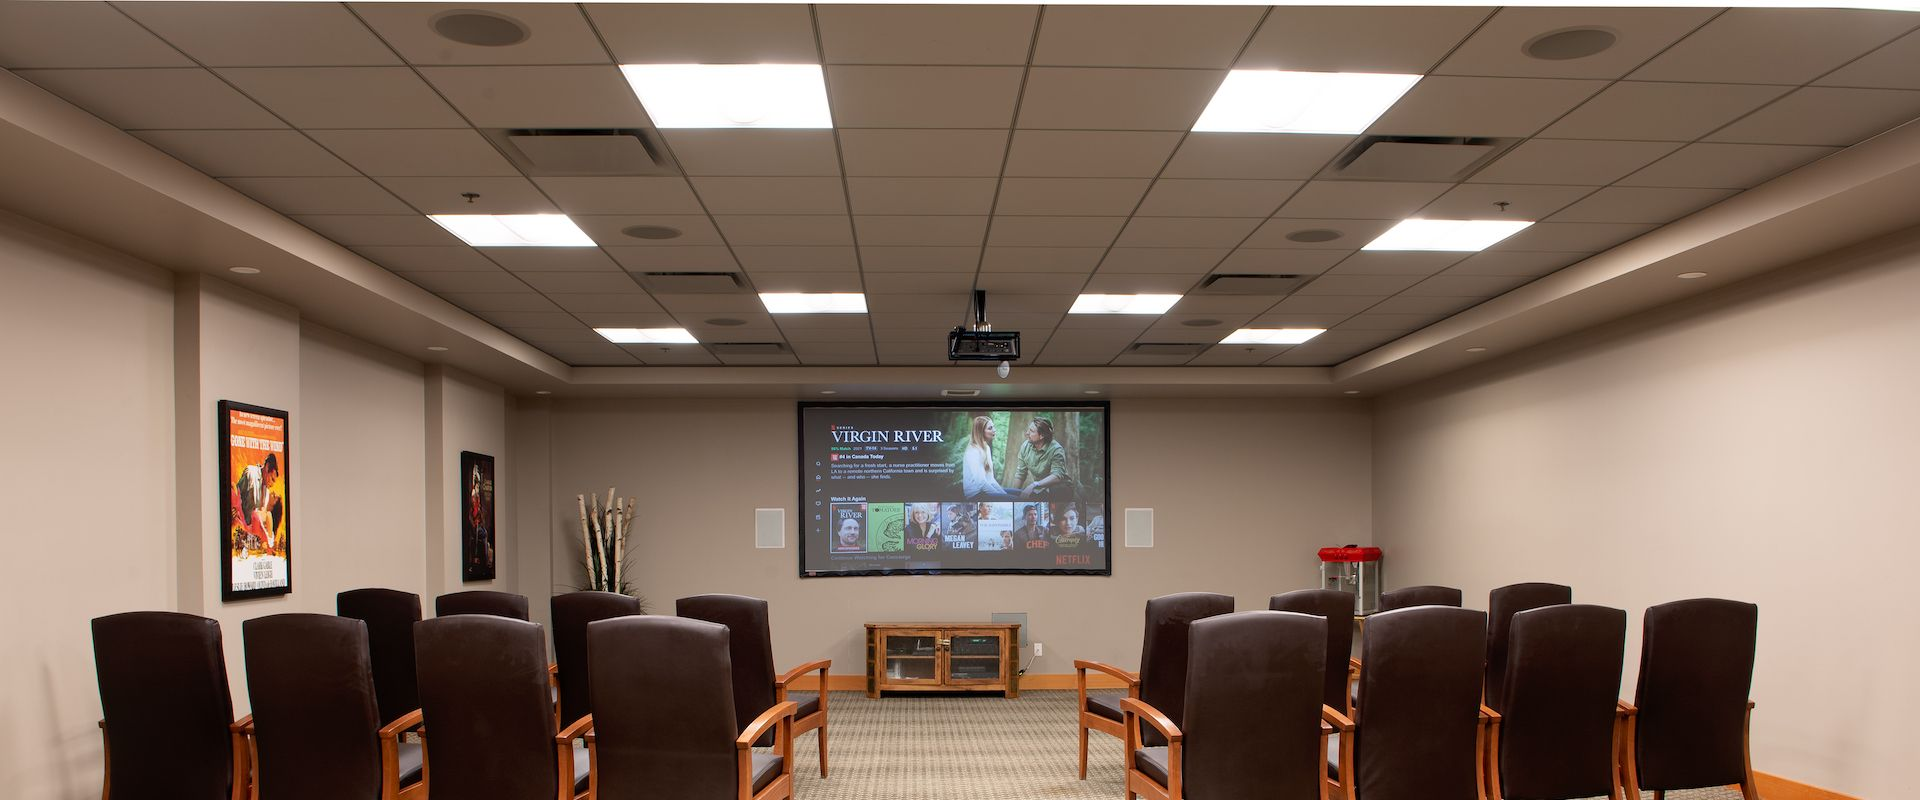 A spacious theatre and media room in the Origin at Spring Creek facility, with grey walls decorated, a grey patterned carpet, a large screen and projector, and two rows on either side of the room with comfortable leather chairs facing the screen.